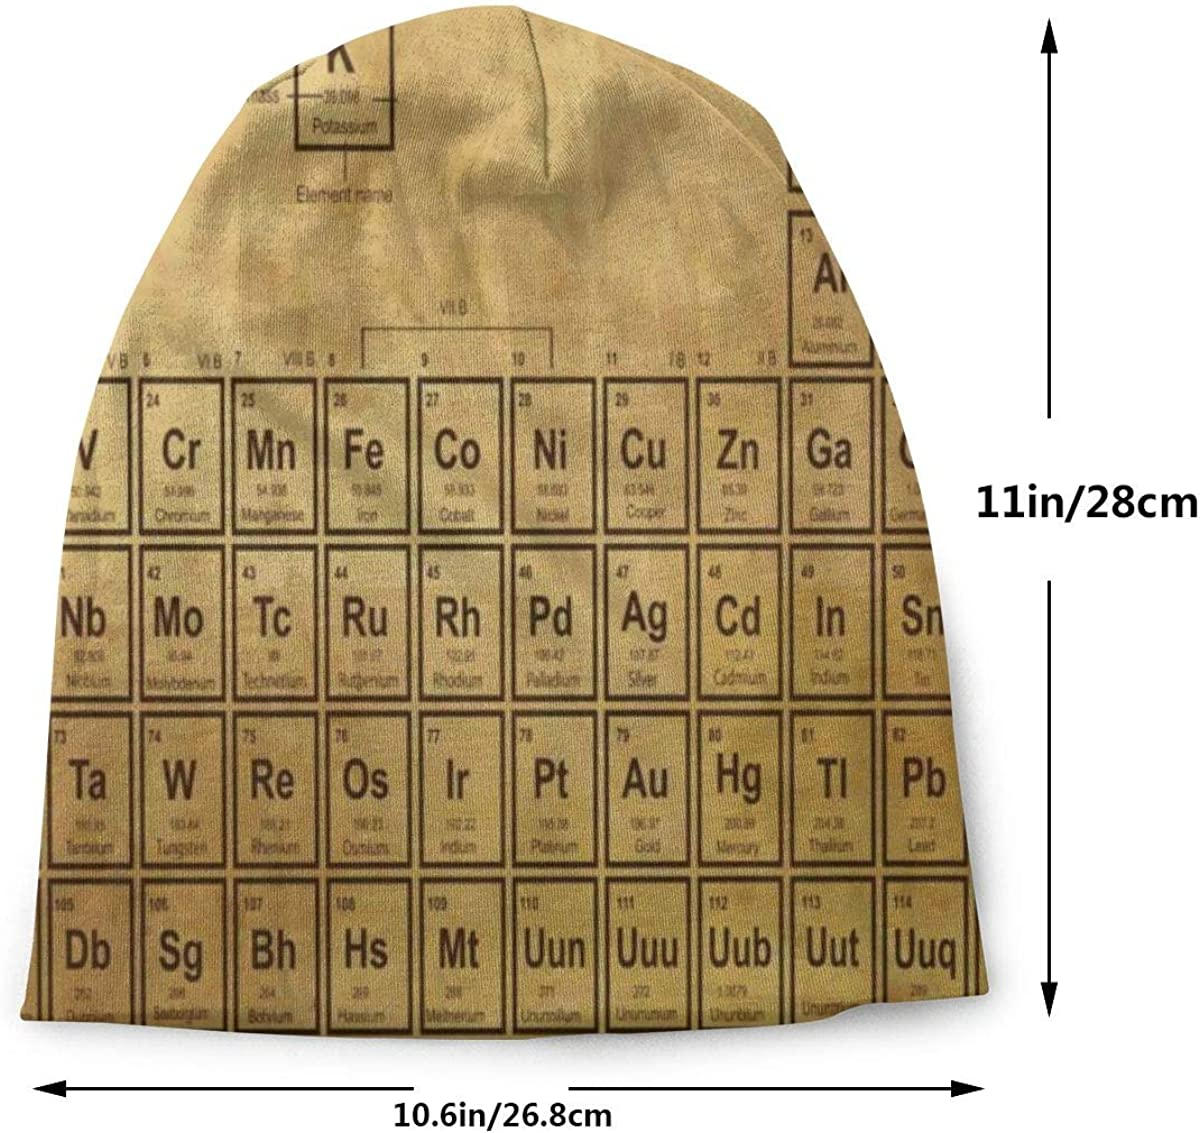 Vintage Periodic Table Oh Elements Beanie for Men Women Soft Slouchy Skull Cap Warm Stretchy Plain Cuff Knit Hats Unisex Black